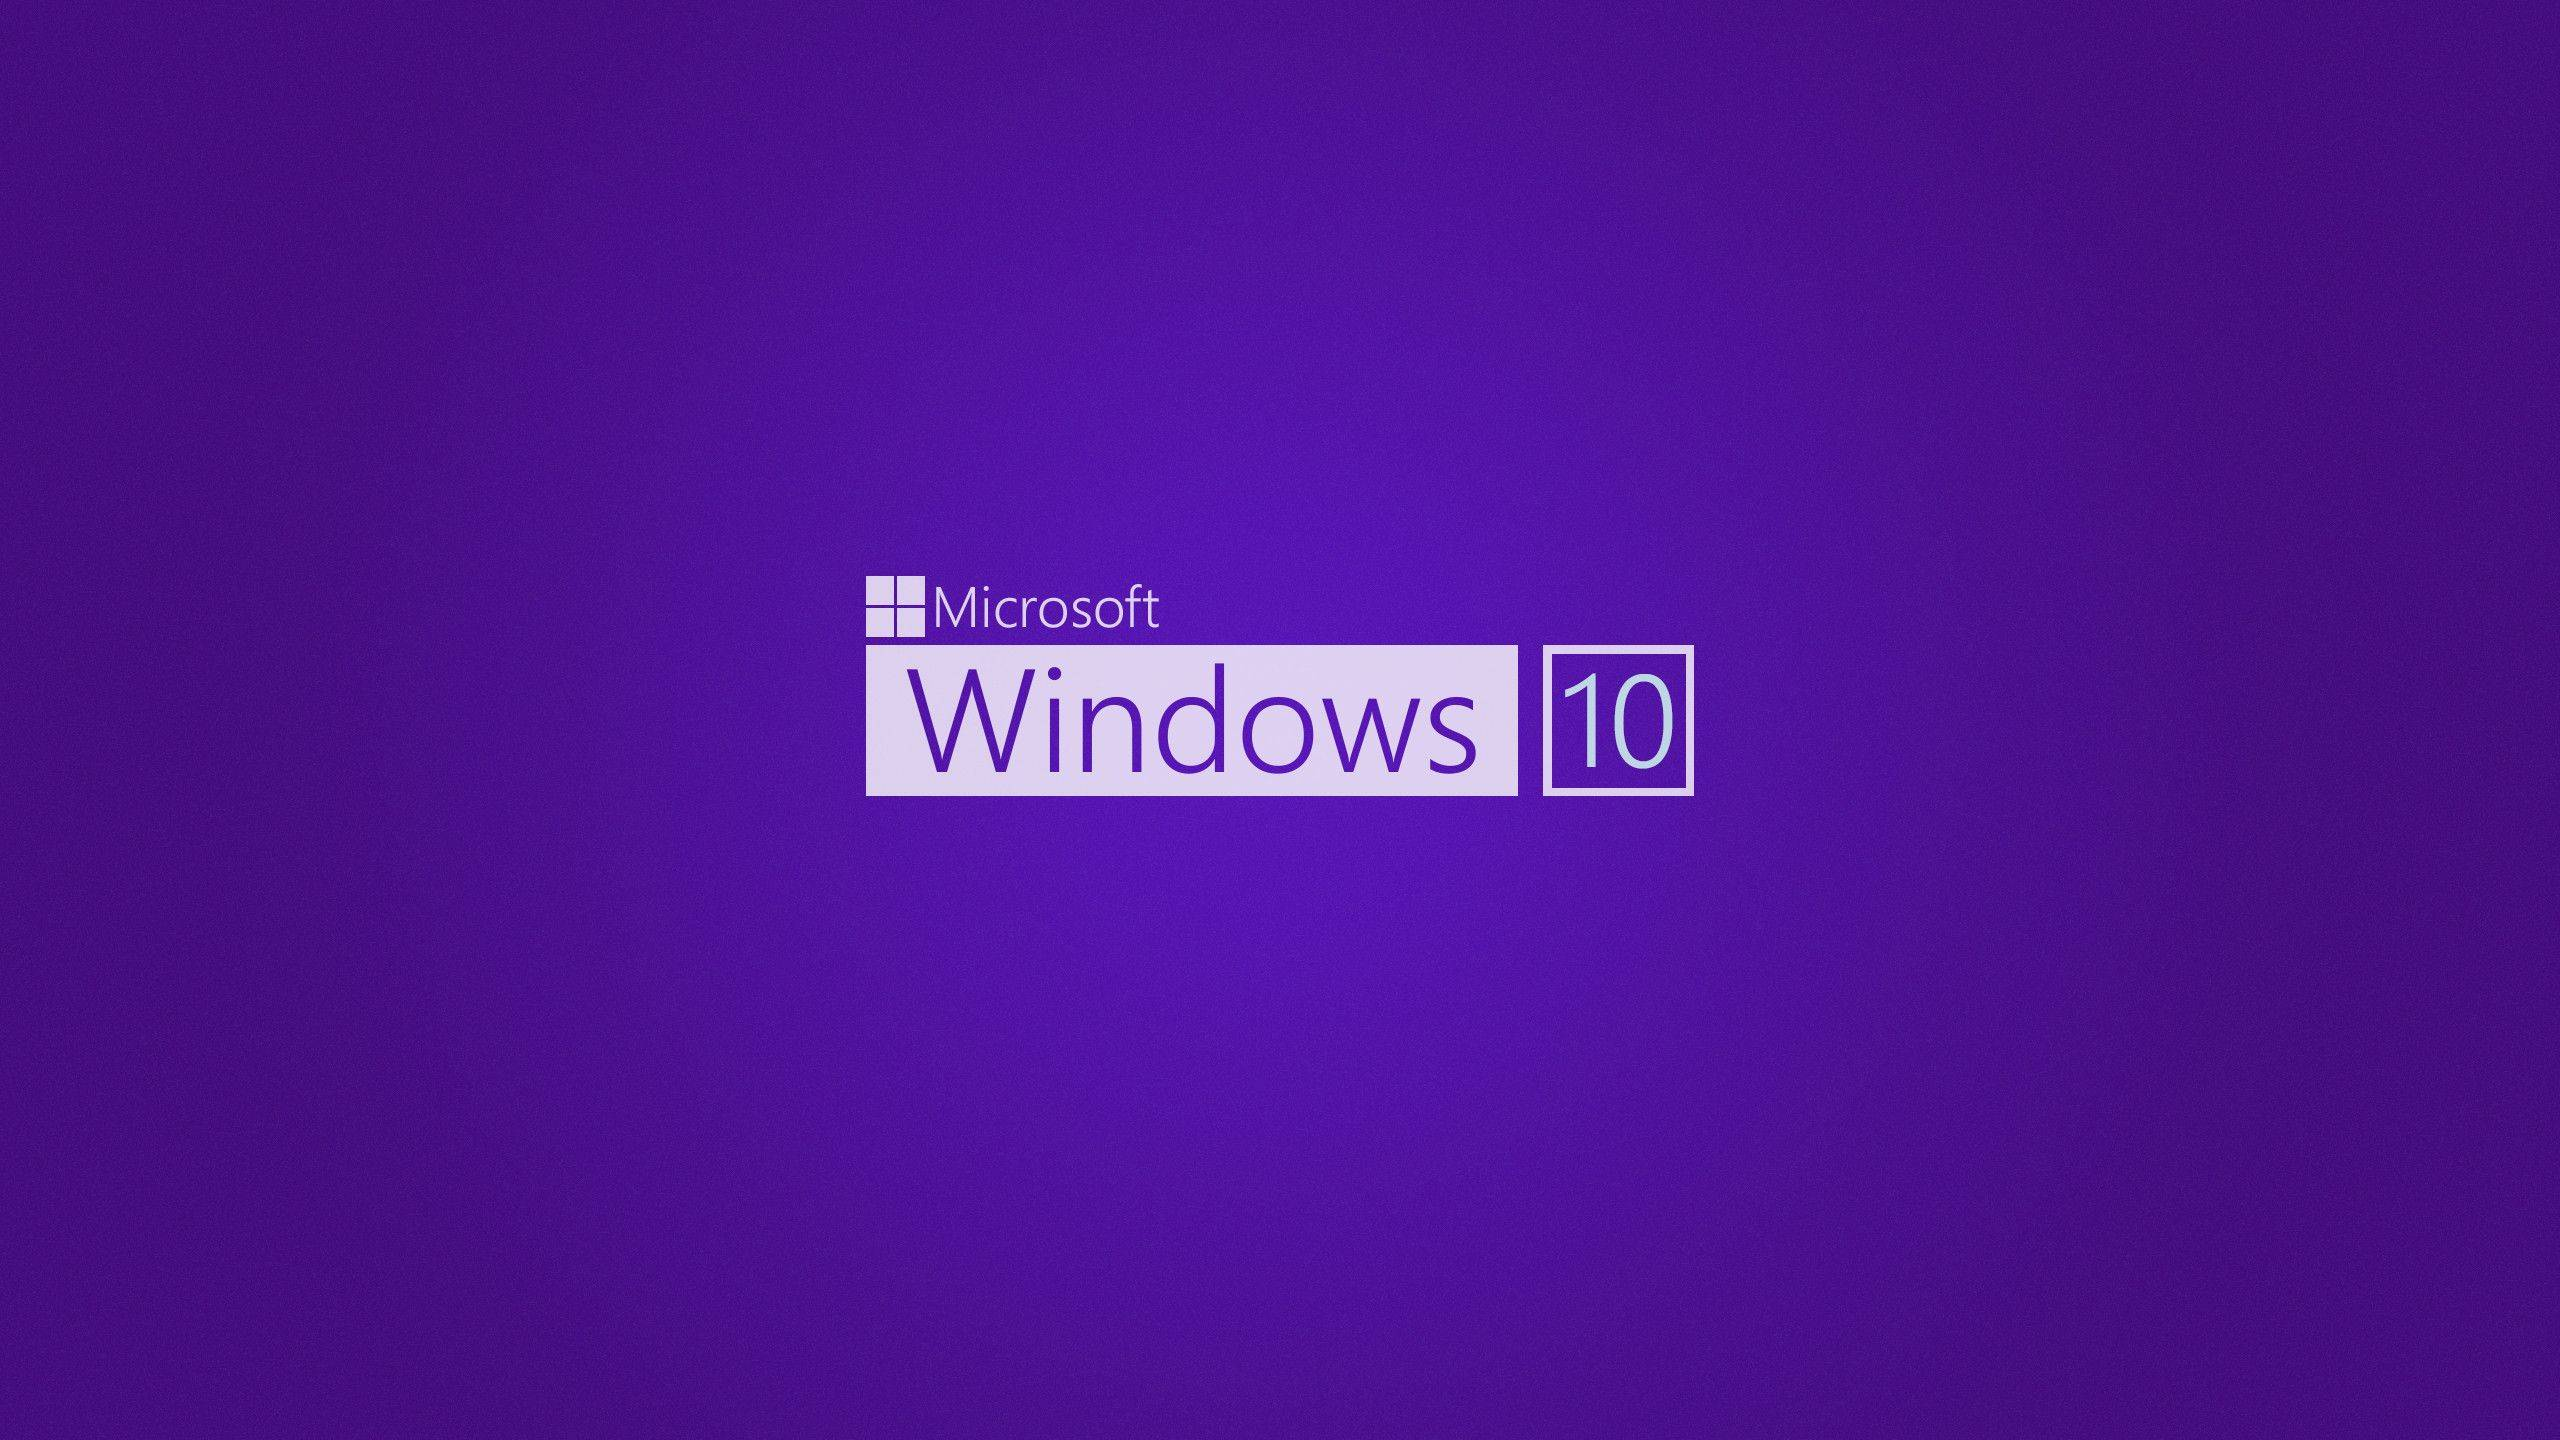 Windows-10-HD-Wallpaper-28